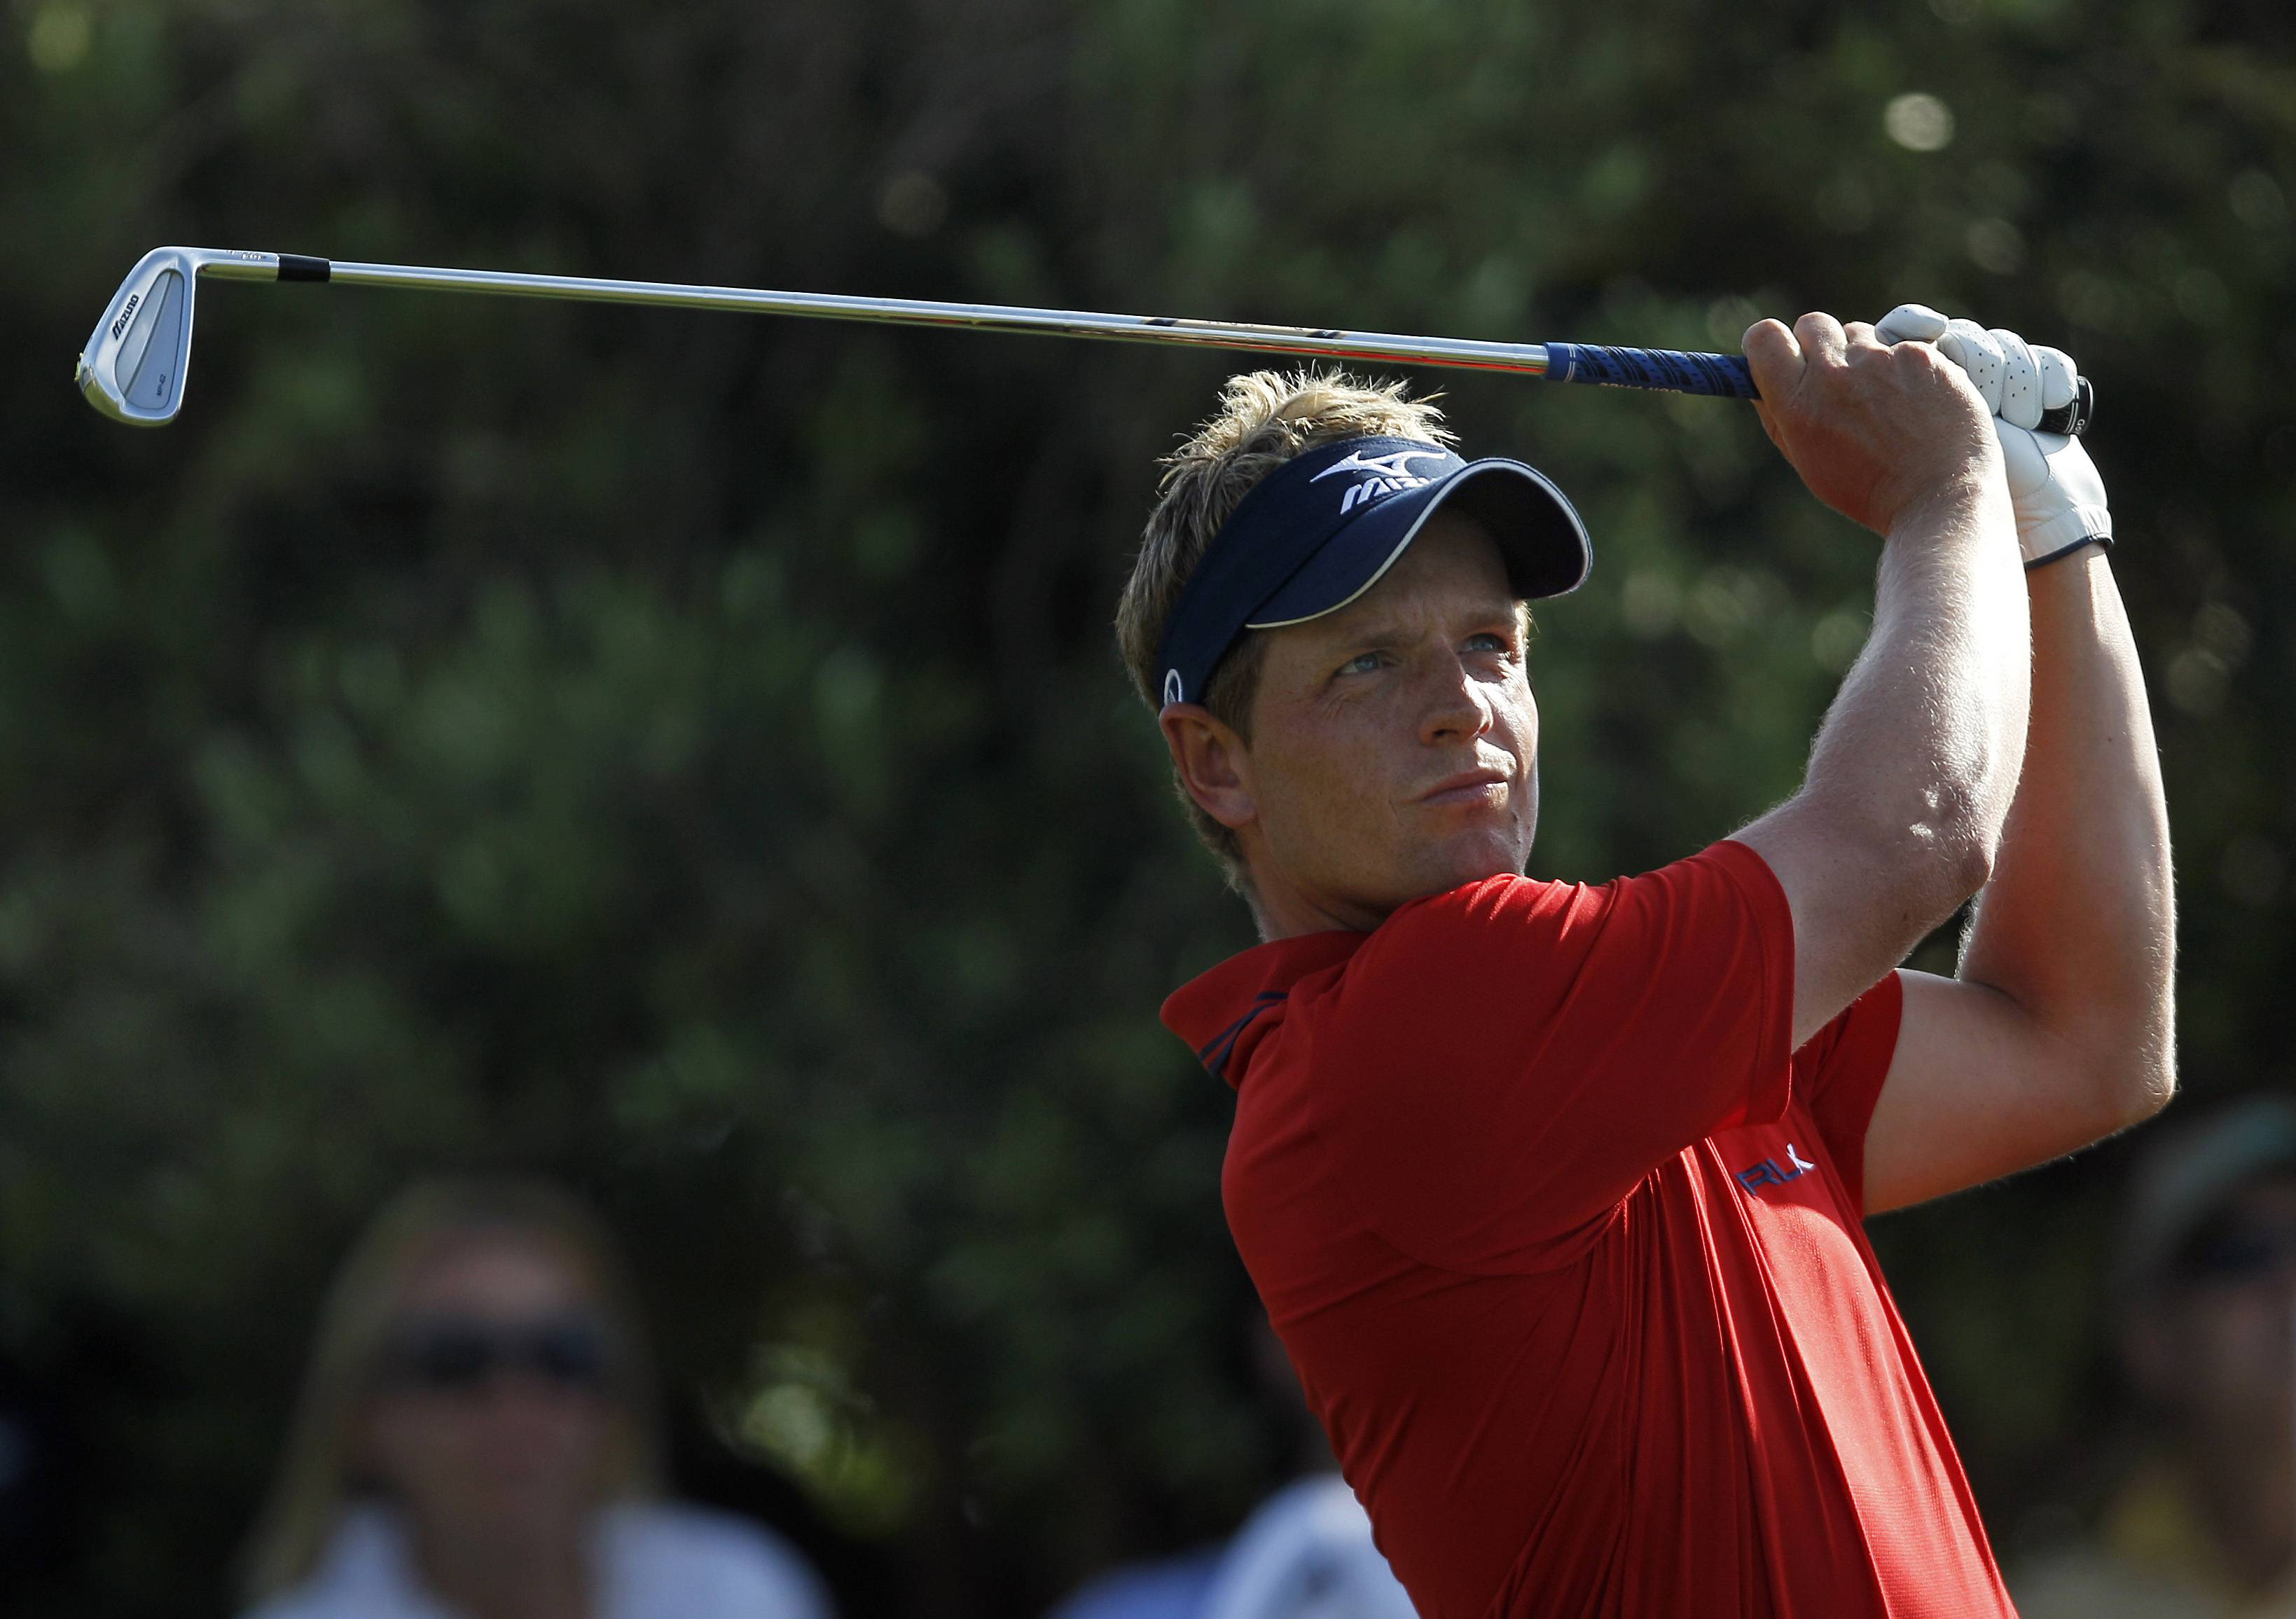 Luke Donald missed out on the chance to gain the No. 1 spot in the world rankings with his loss to Ian Poulter in the World Match Play final Sunday.